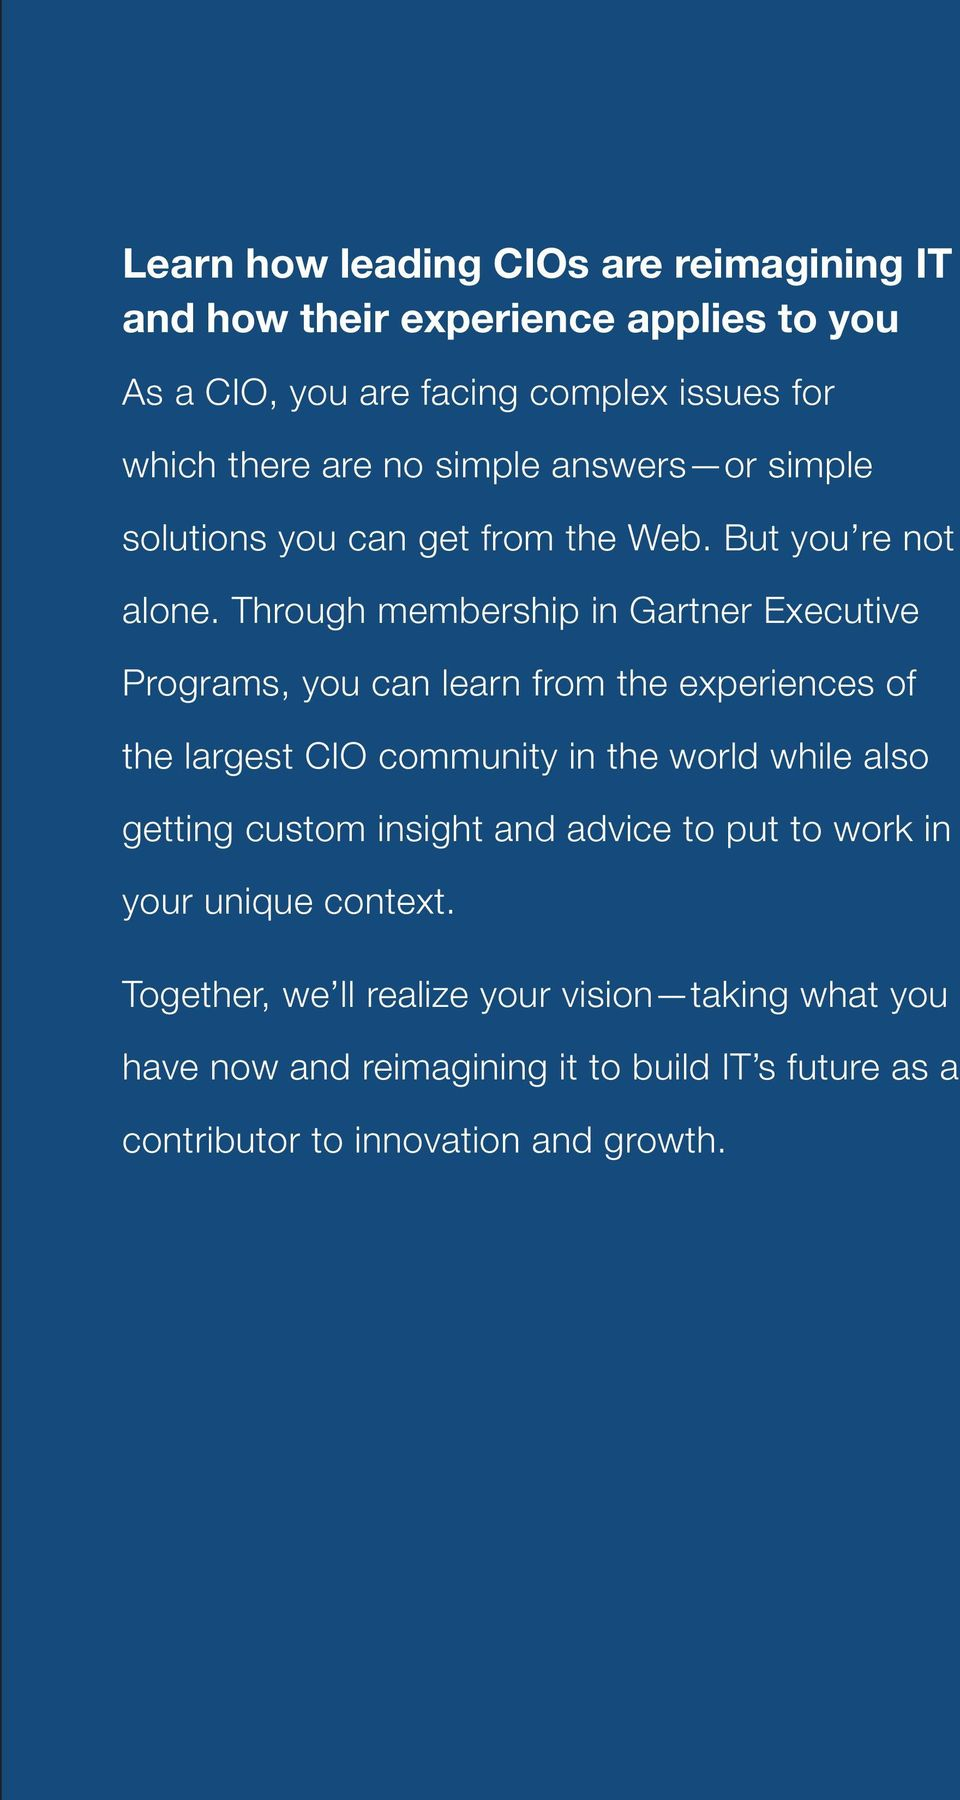 Through membership in Gartner Executive Programs, you can learn from the experiences of the largest CIO community in the world while also getting